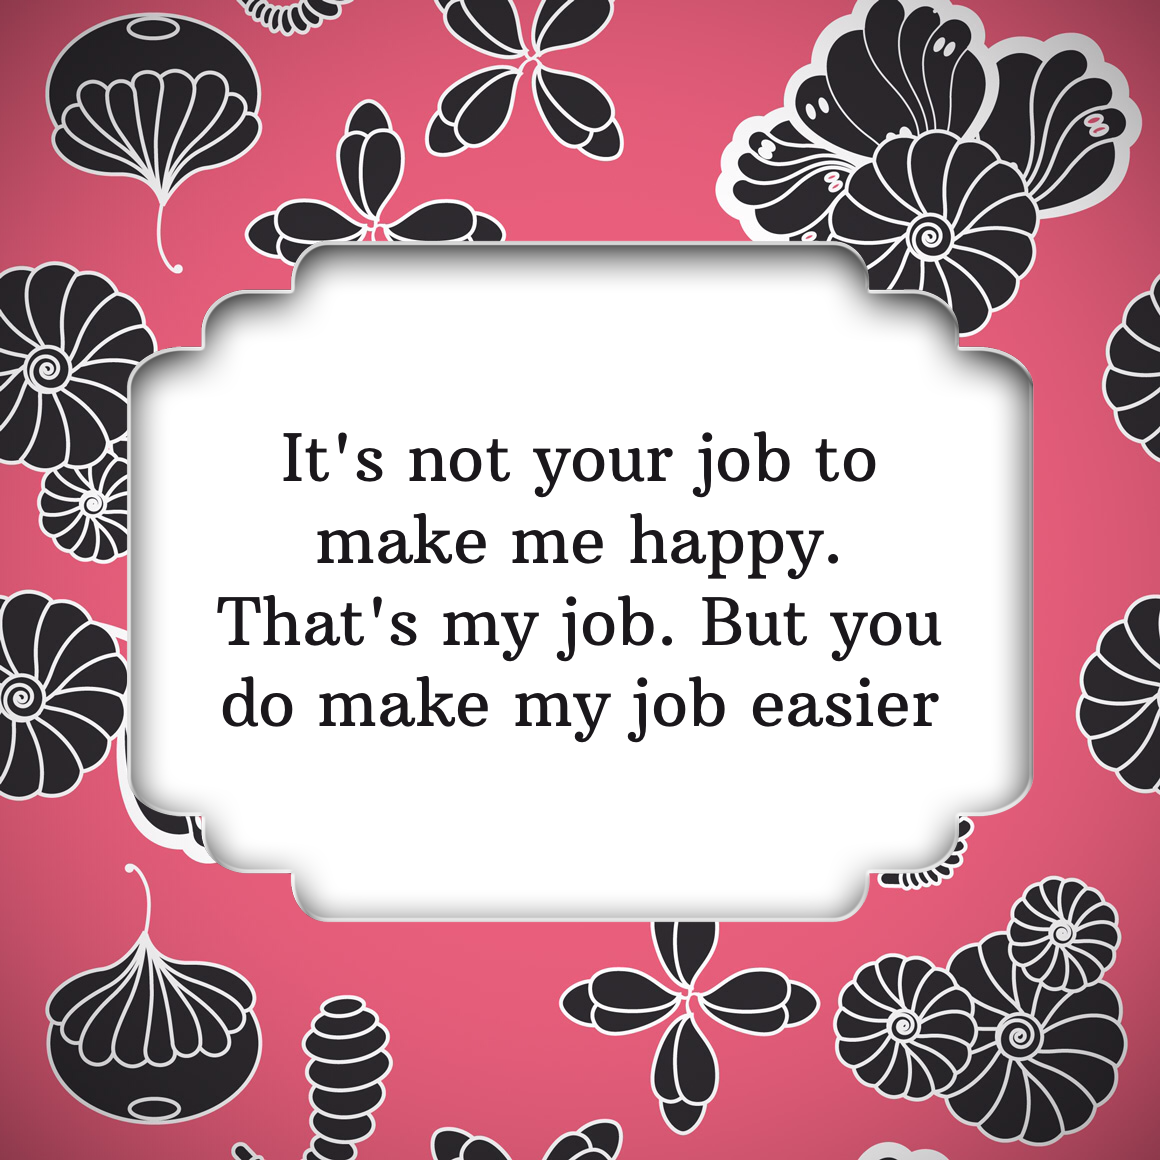 It's not your job to make me happy. That's my job. But you do make my job easier. #thoughtful_app #annaskold